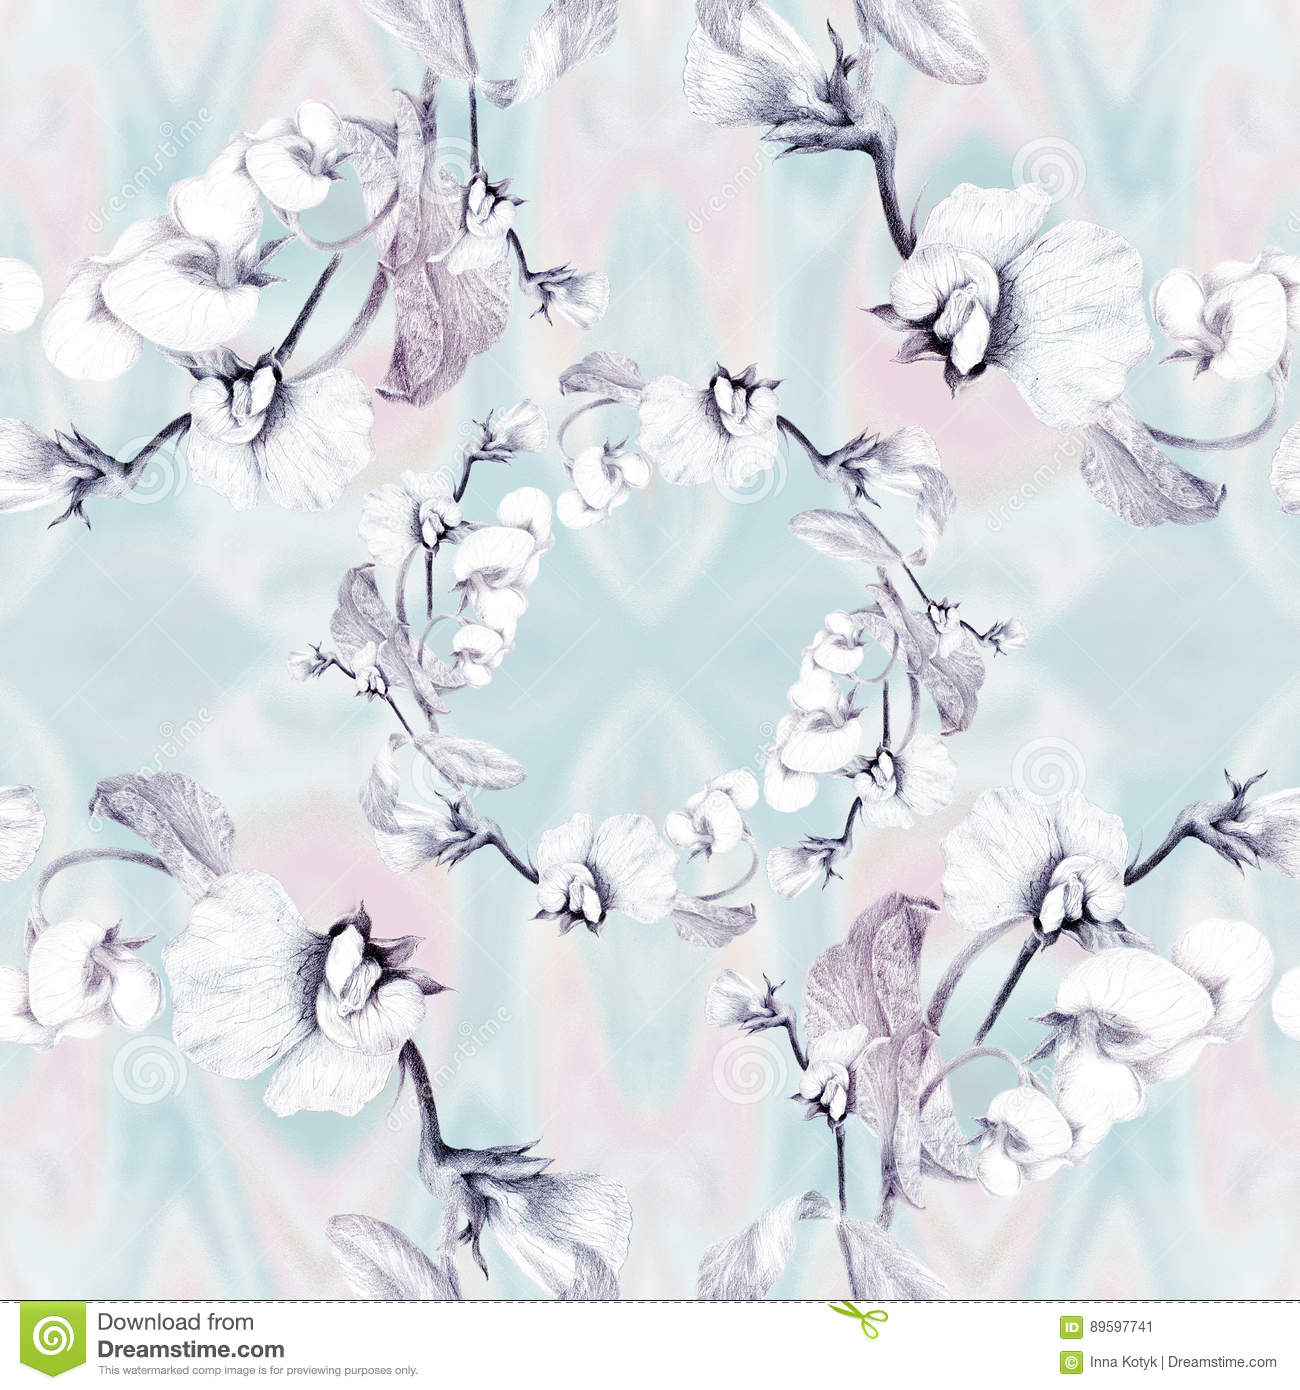 branch of blossoming peas abstract wallpaper with floral motifs